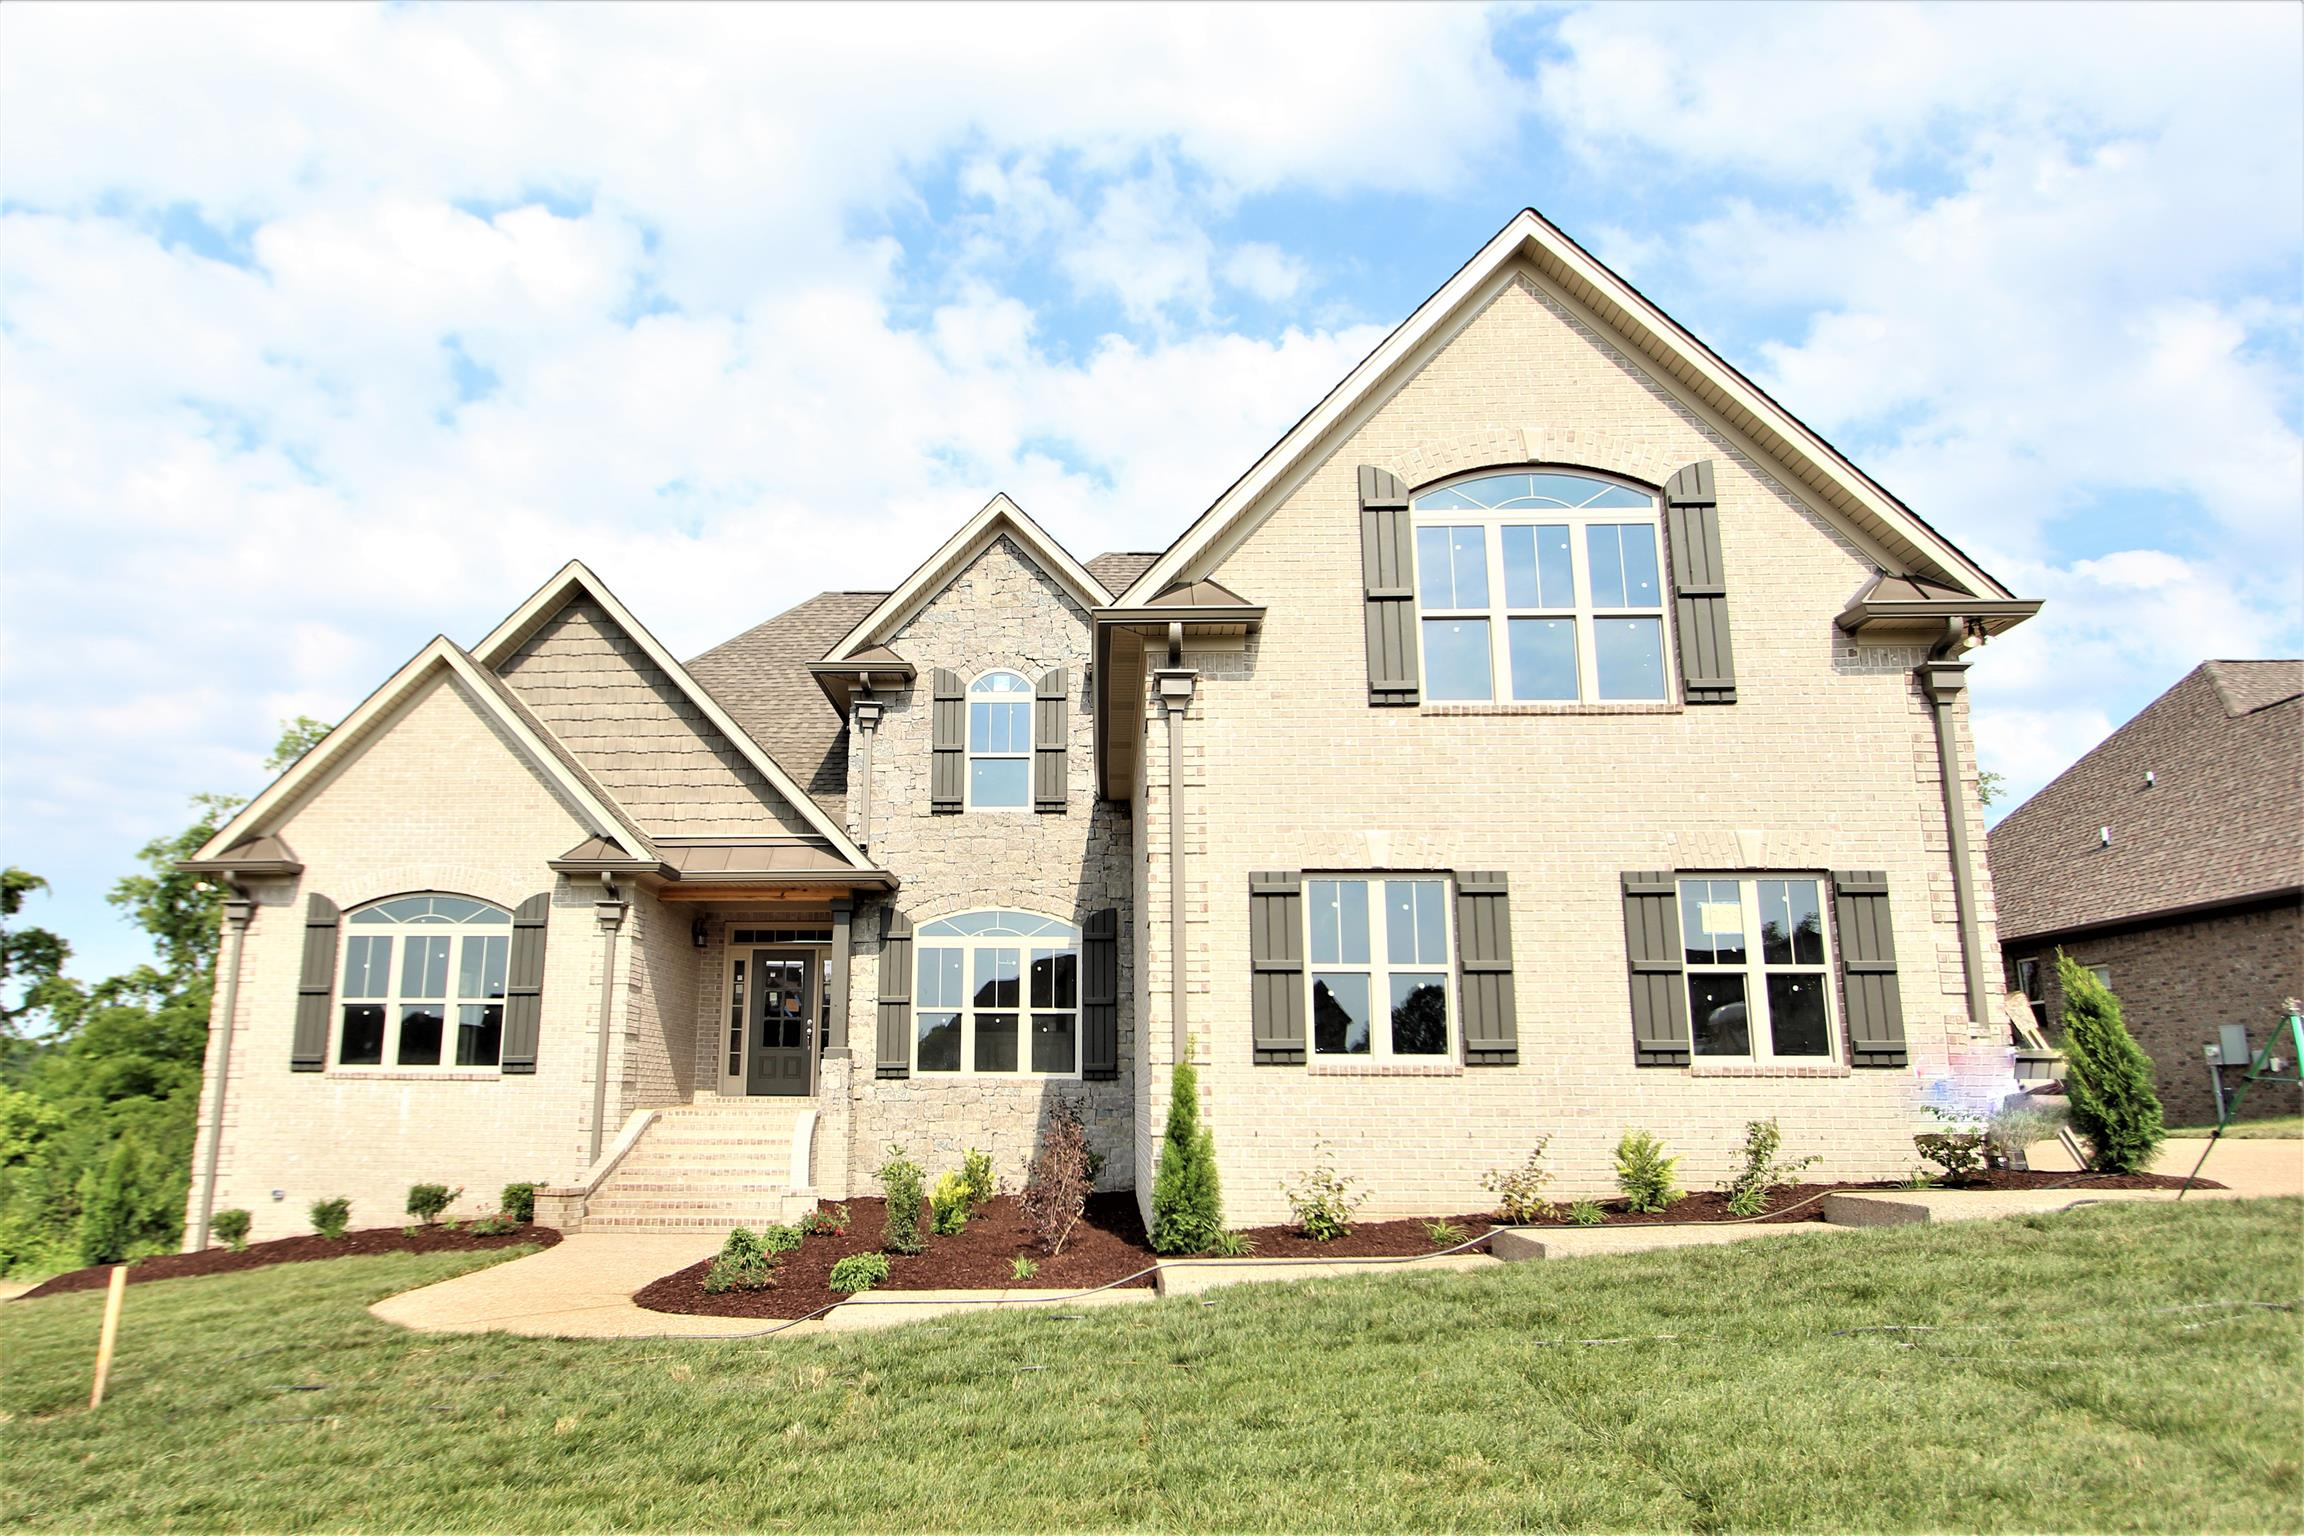 419 Whitley Way #203 37122 - One of Mount Juliet Homes for Sale